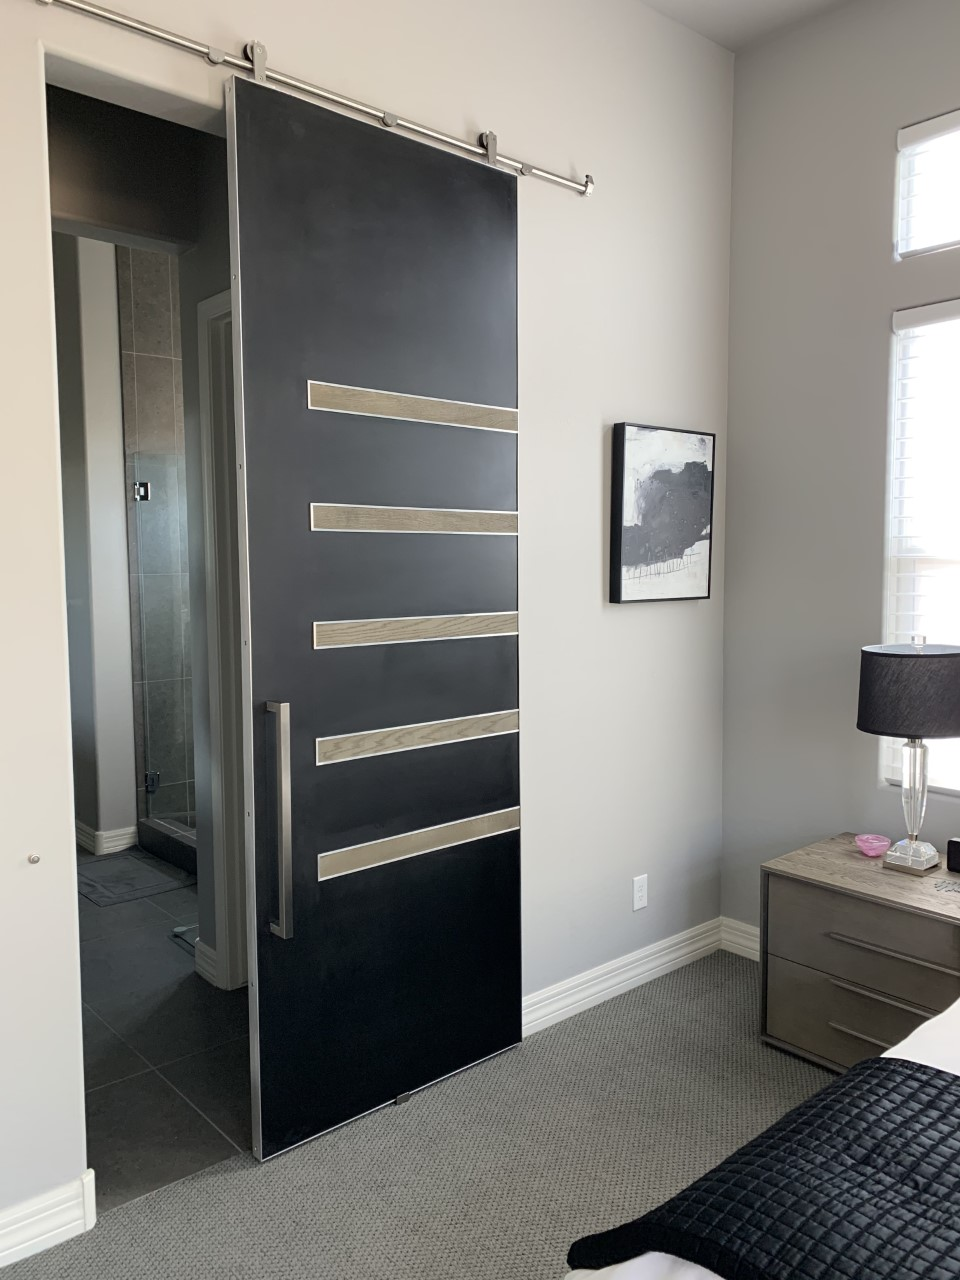 Contemporary metal panel door with wood pieces and metal edge frame